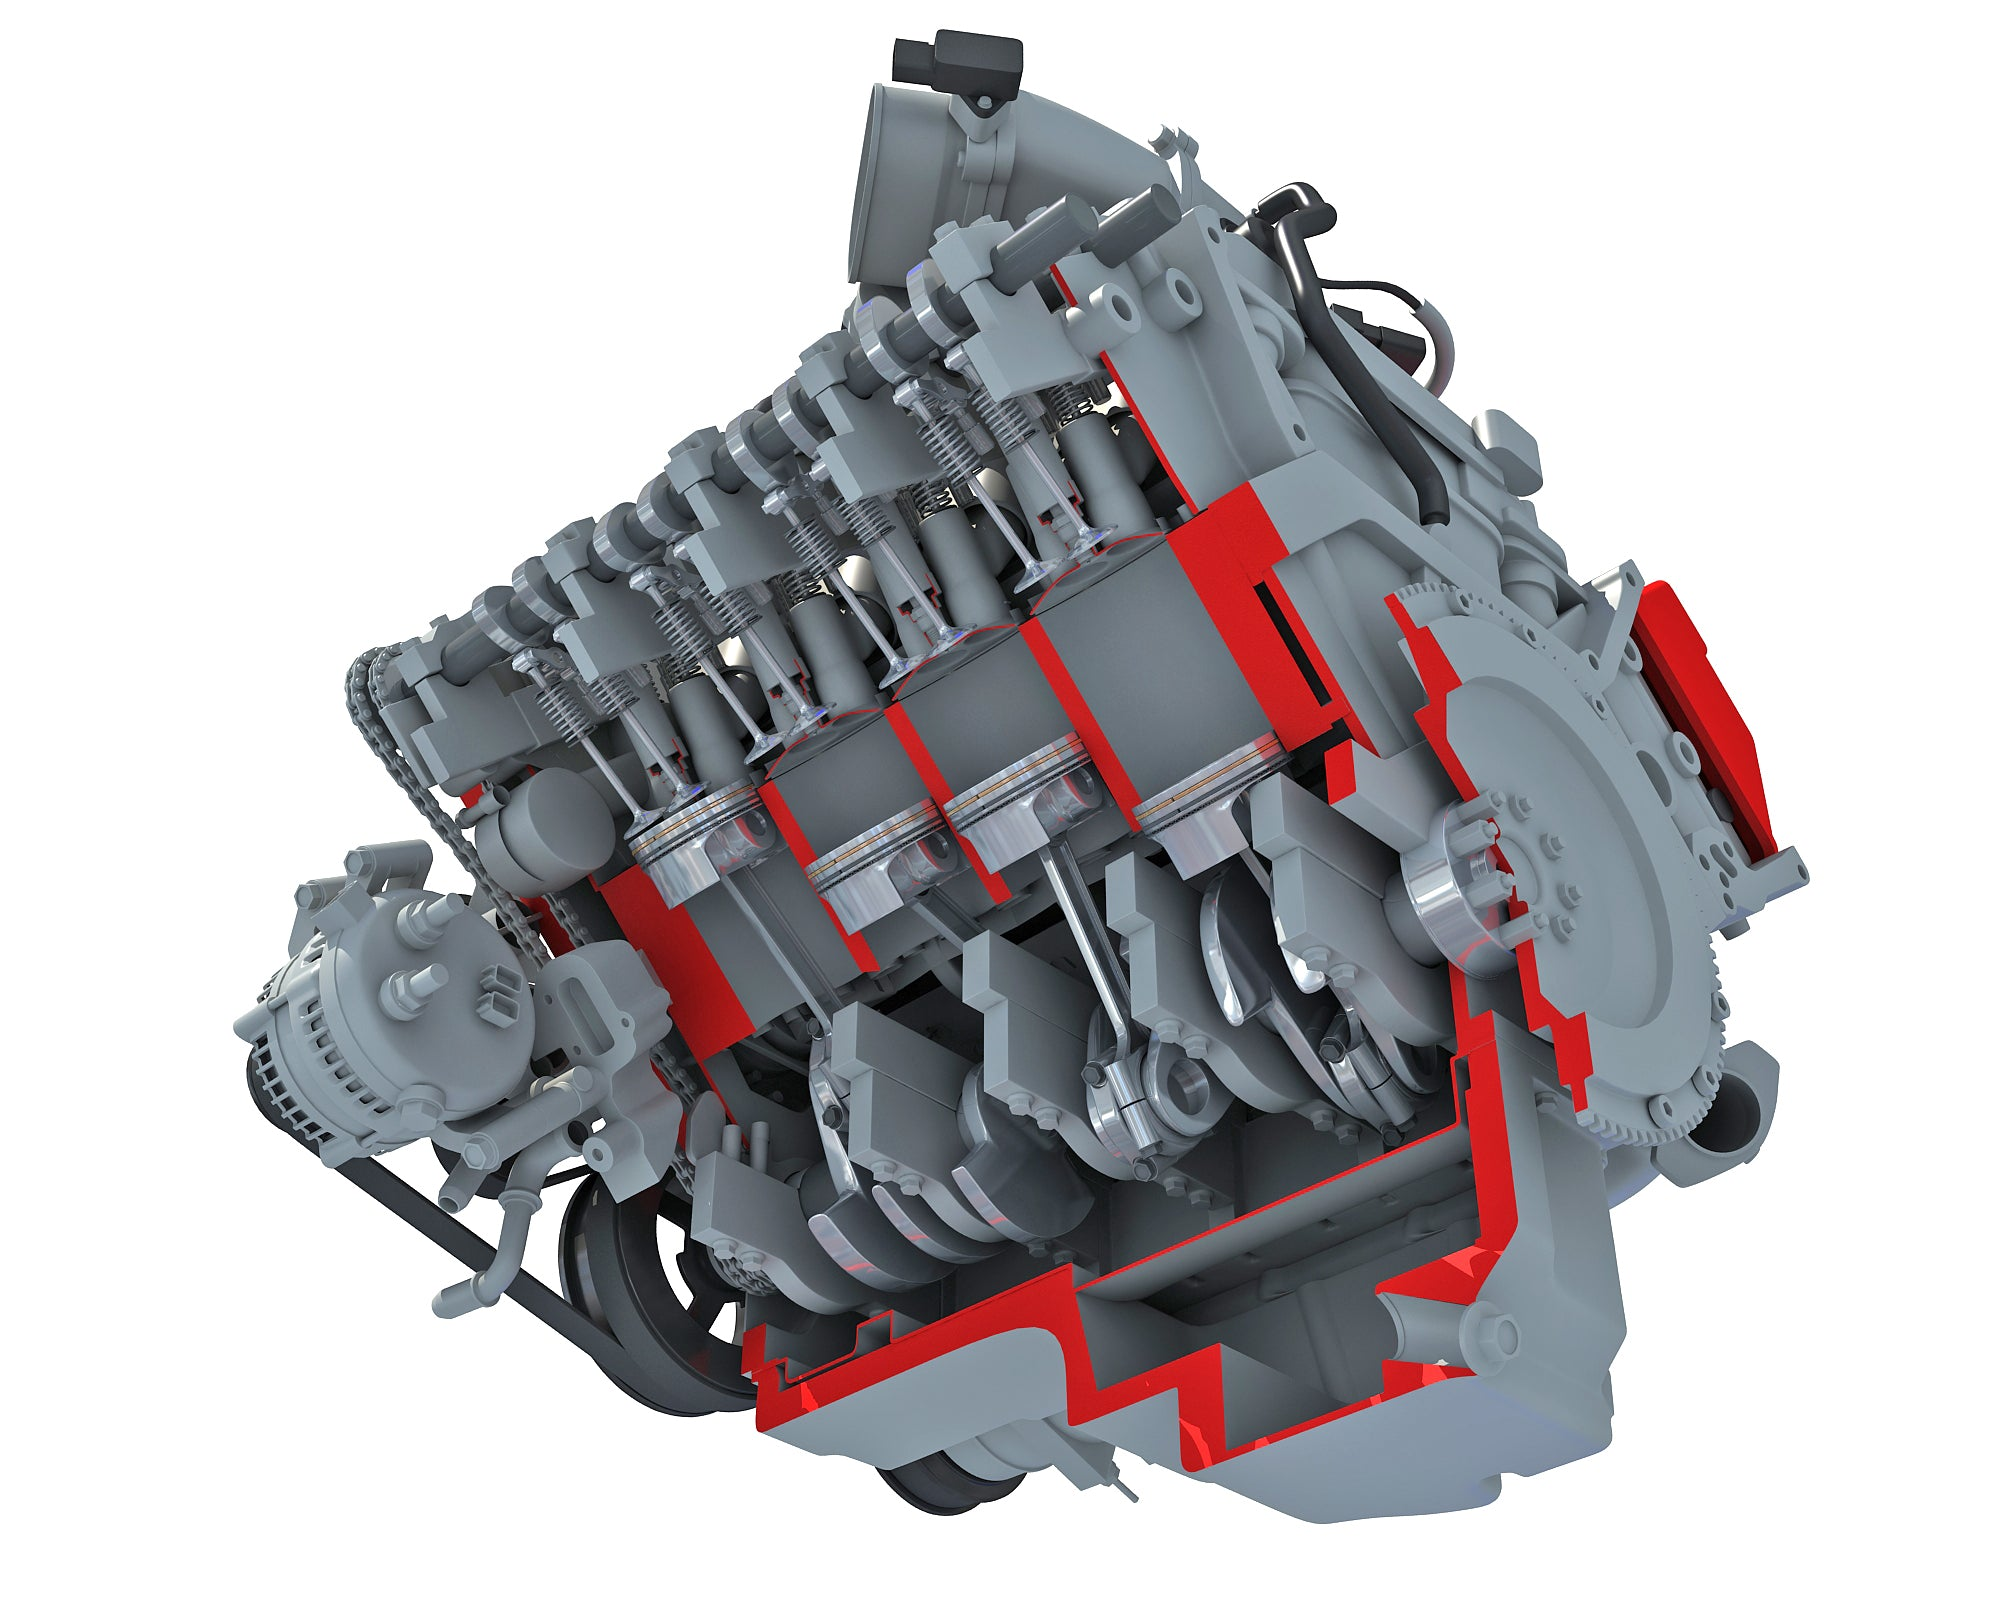 Engine Cutaway Animation